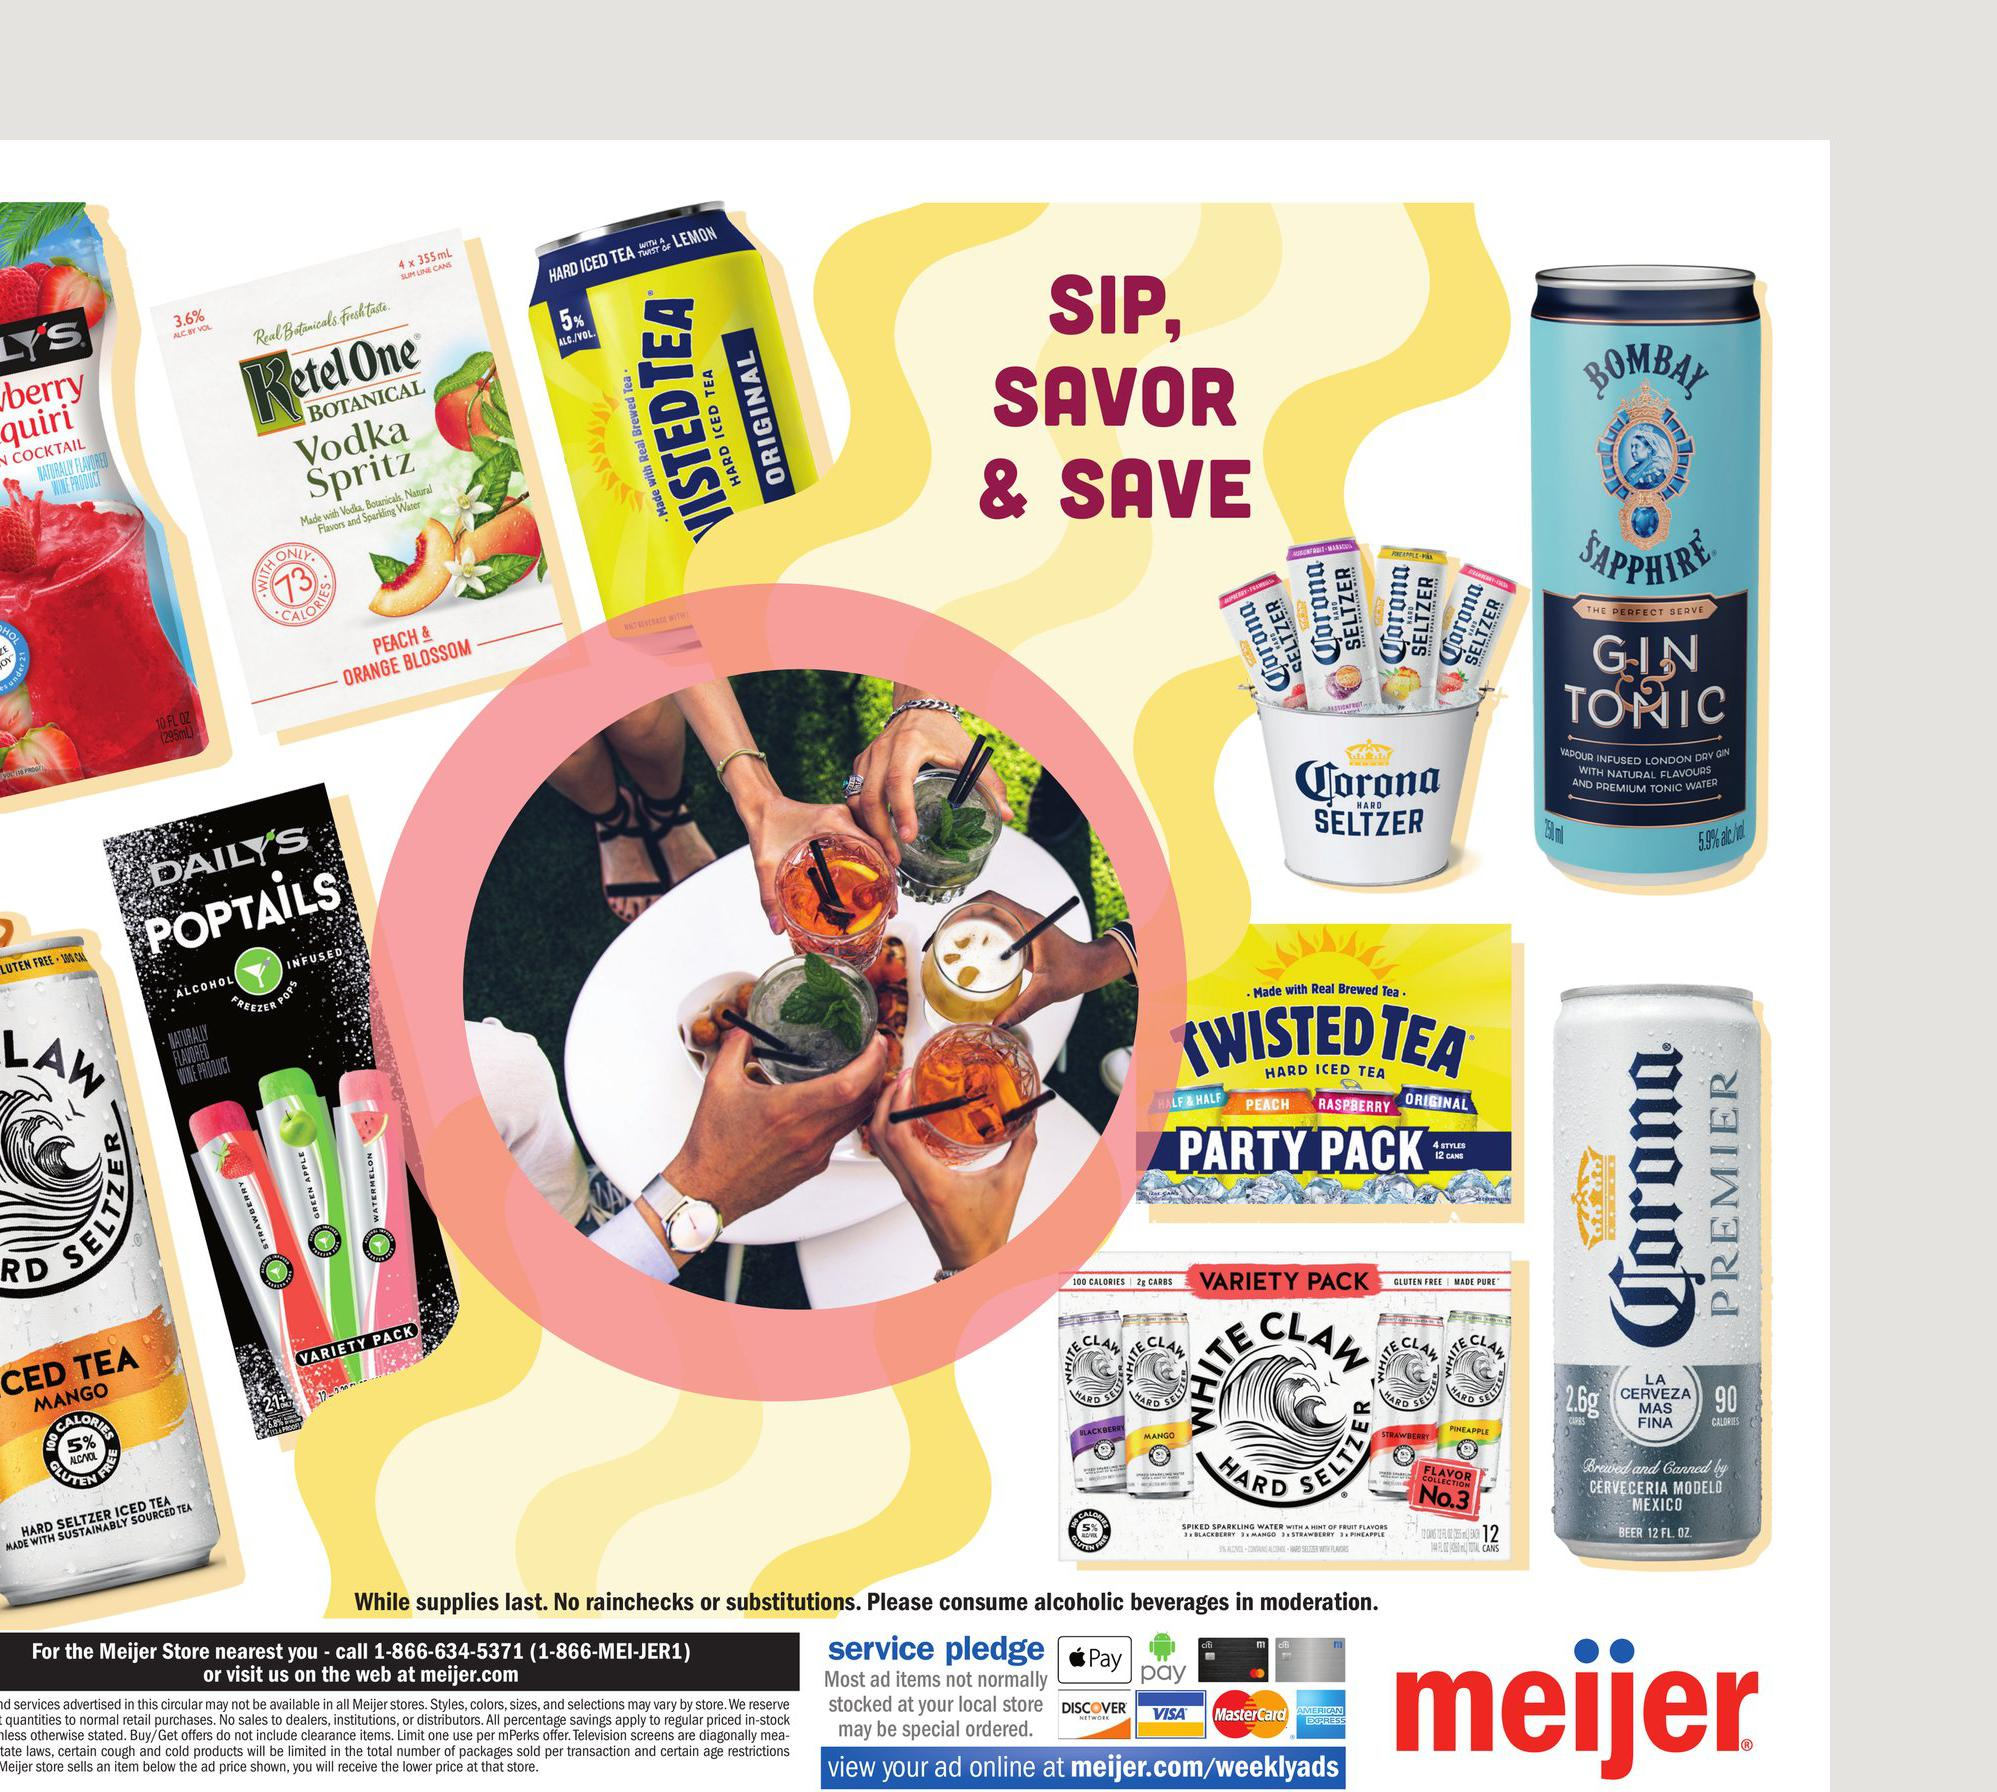 20.06.2021 Meijer ad 5. page